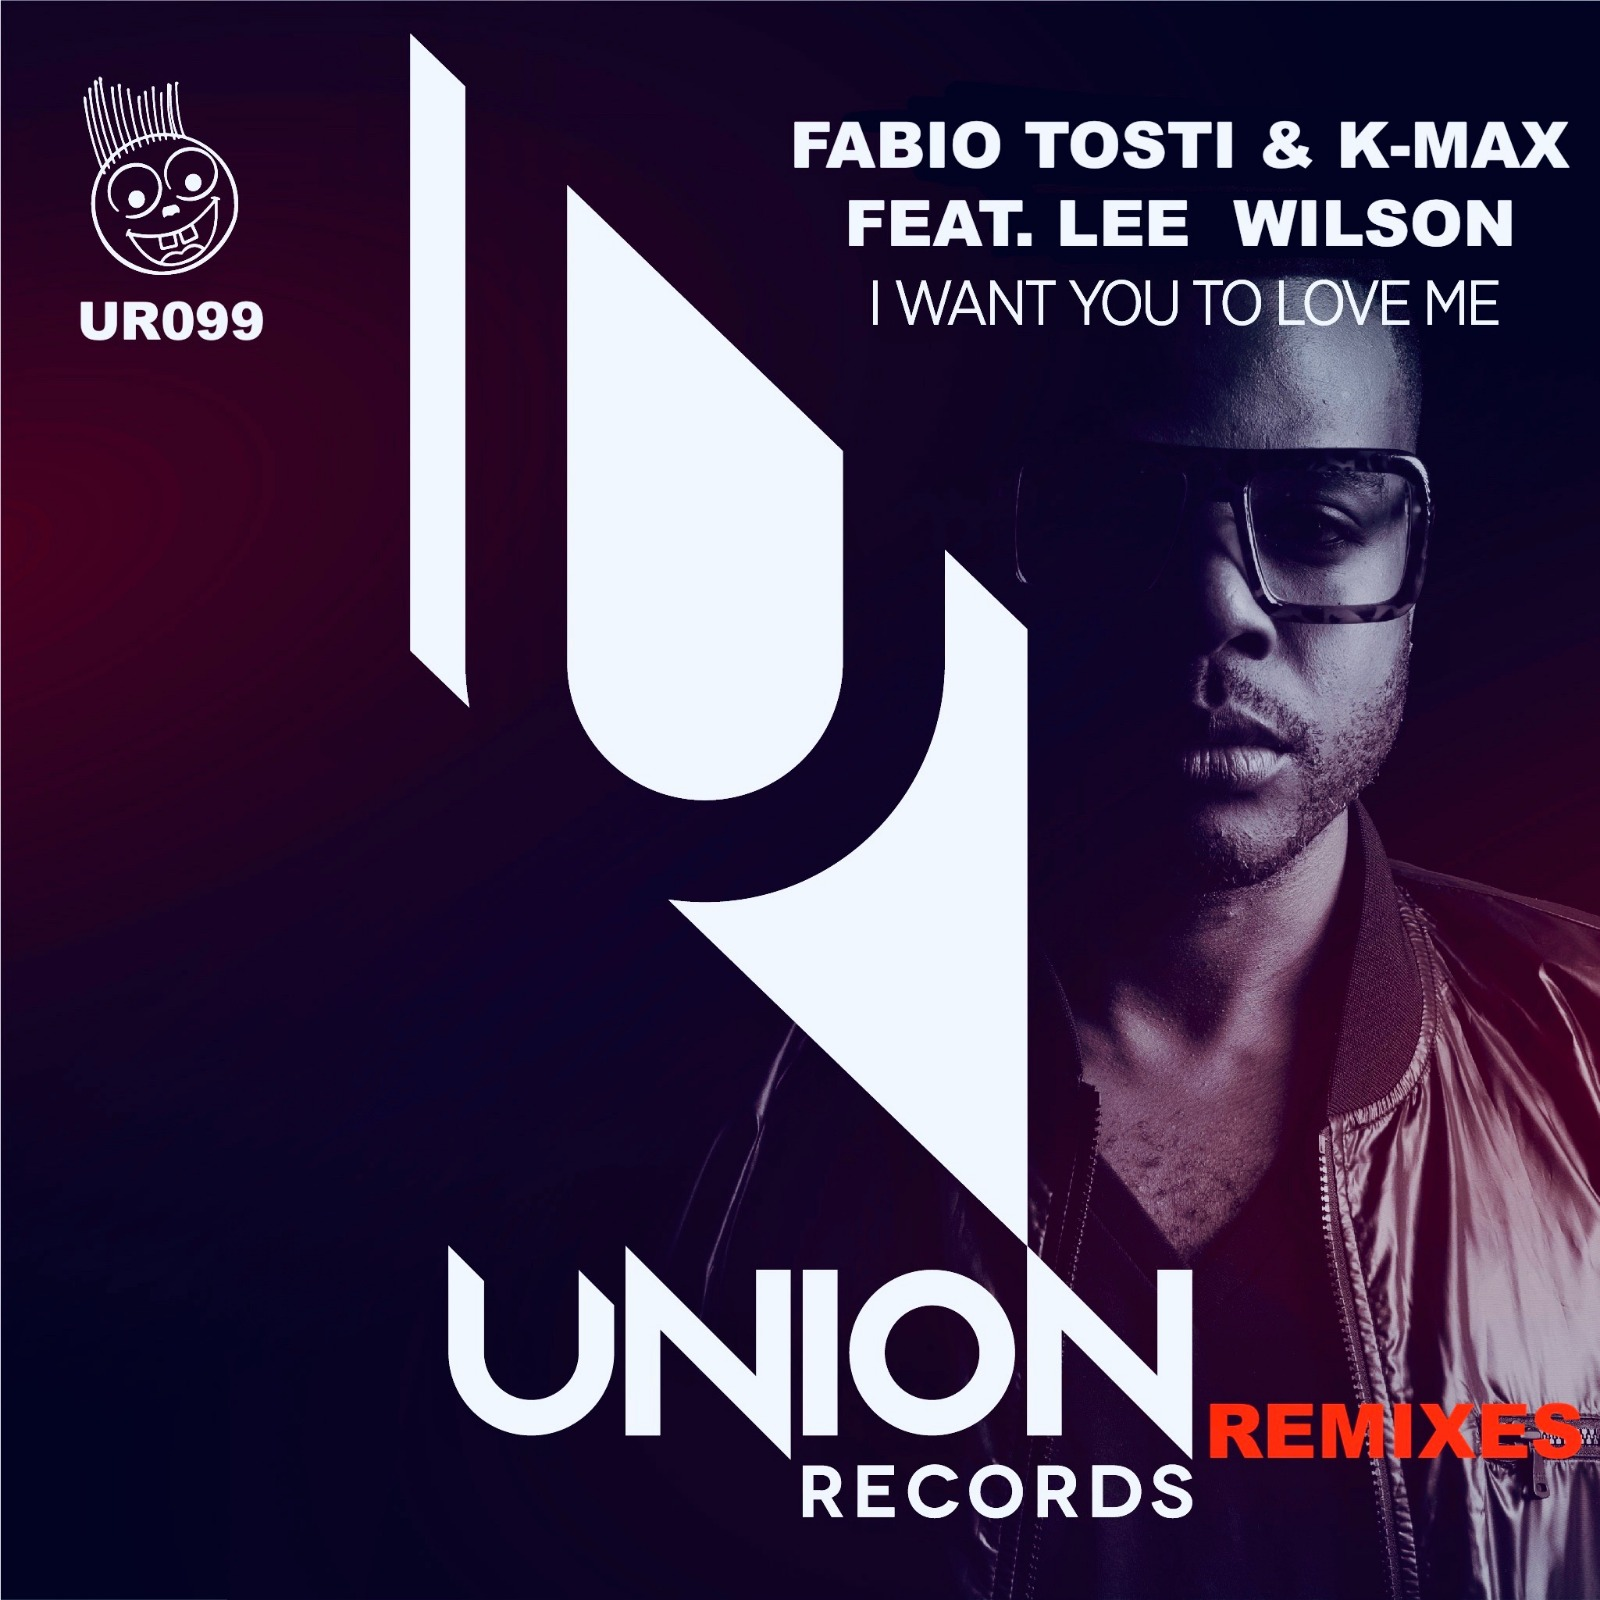 fabio-tosti-k-max-feat-lee-wilson-i-want-you-to-love-me-remixes